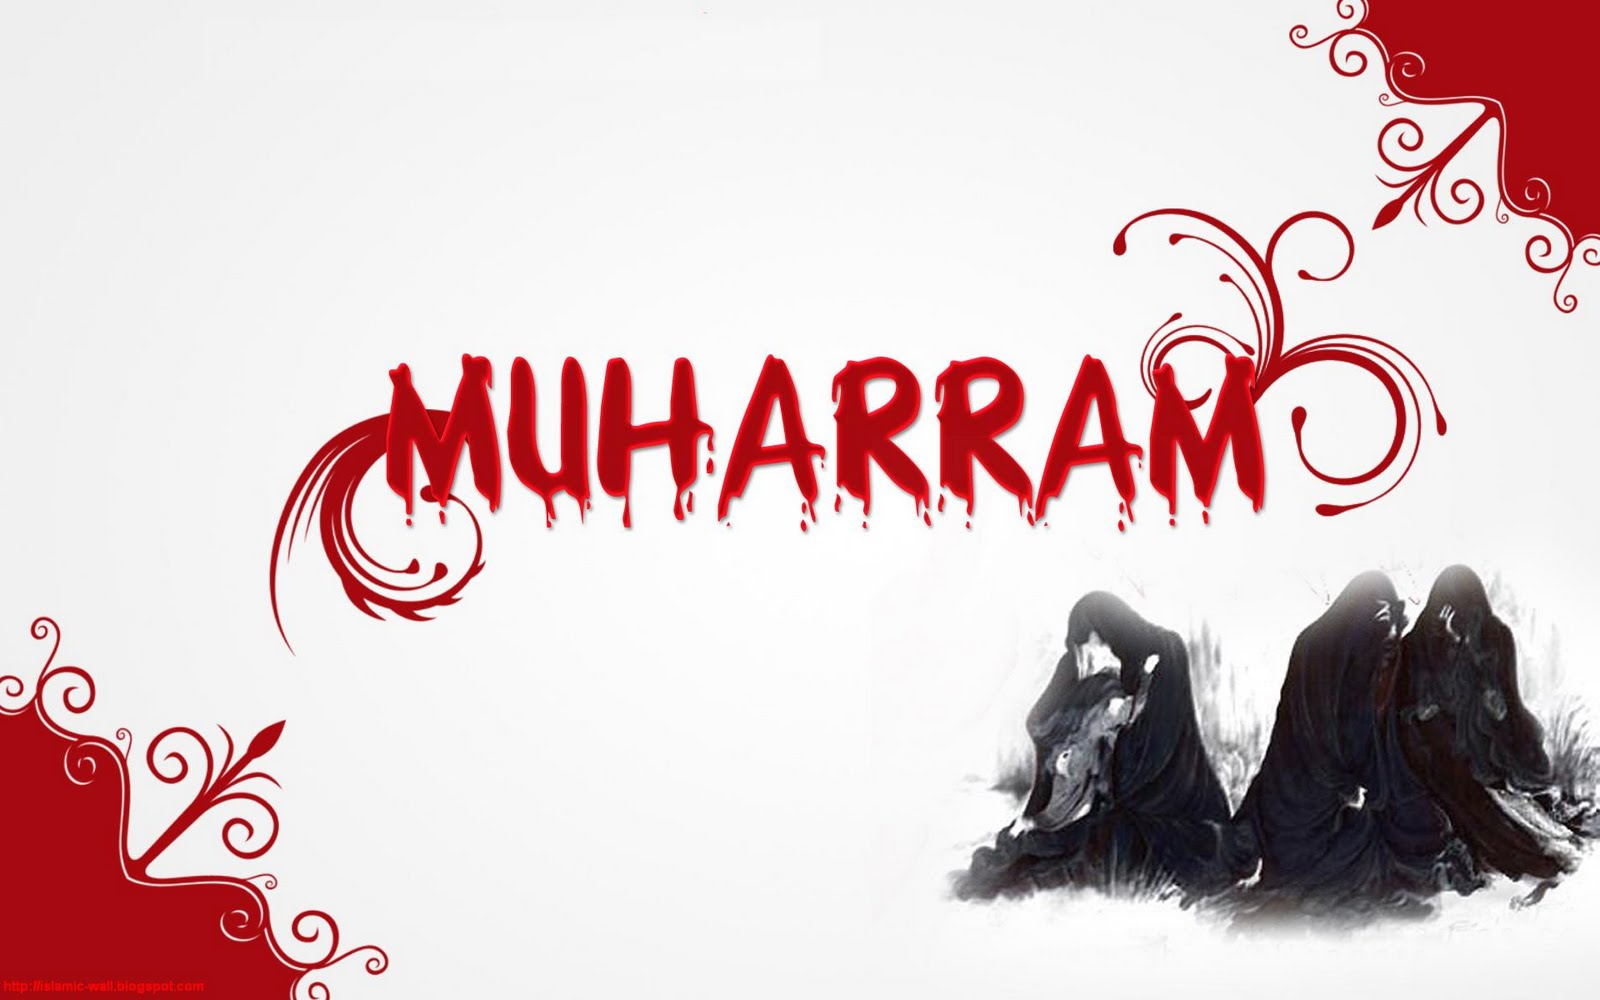 muharram wallpapers 02